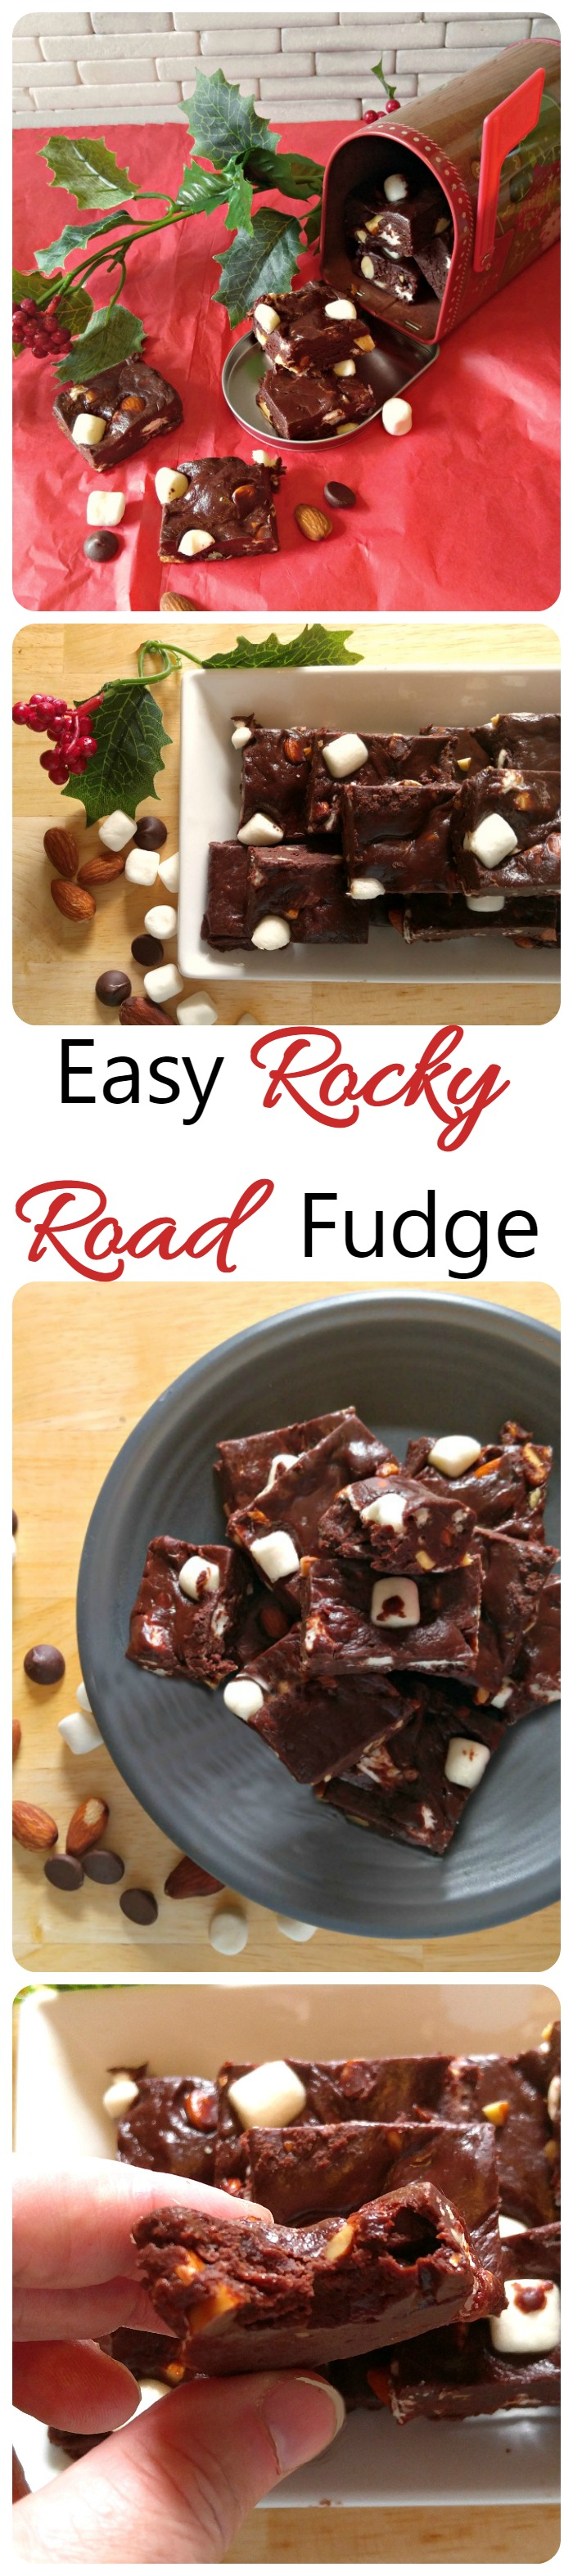 This rocky road fudge is quick and easy to make and, best of all, FOOLPROOF!  It comes together in minutes in the microwave.